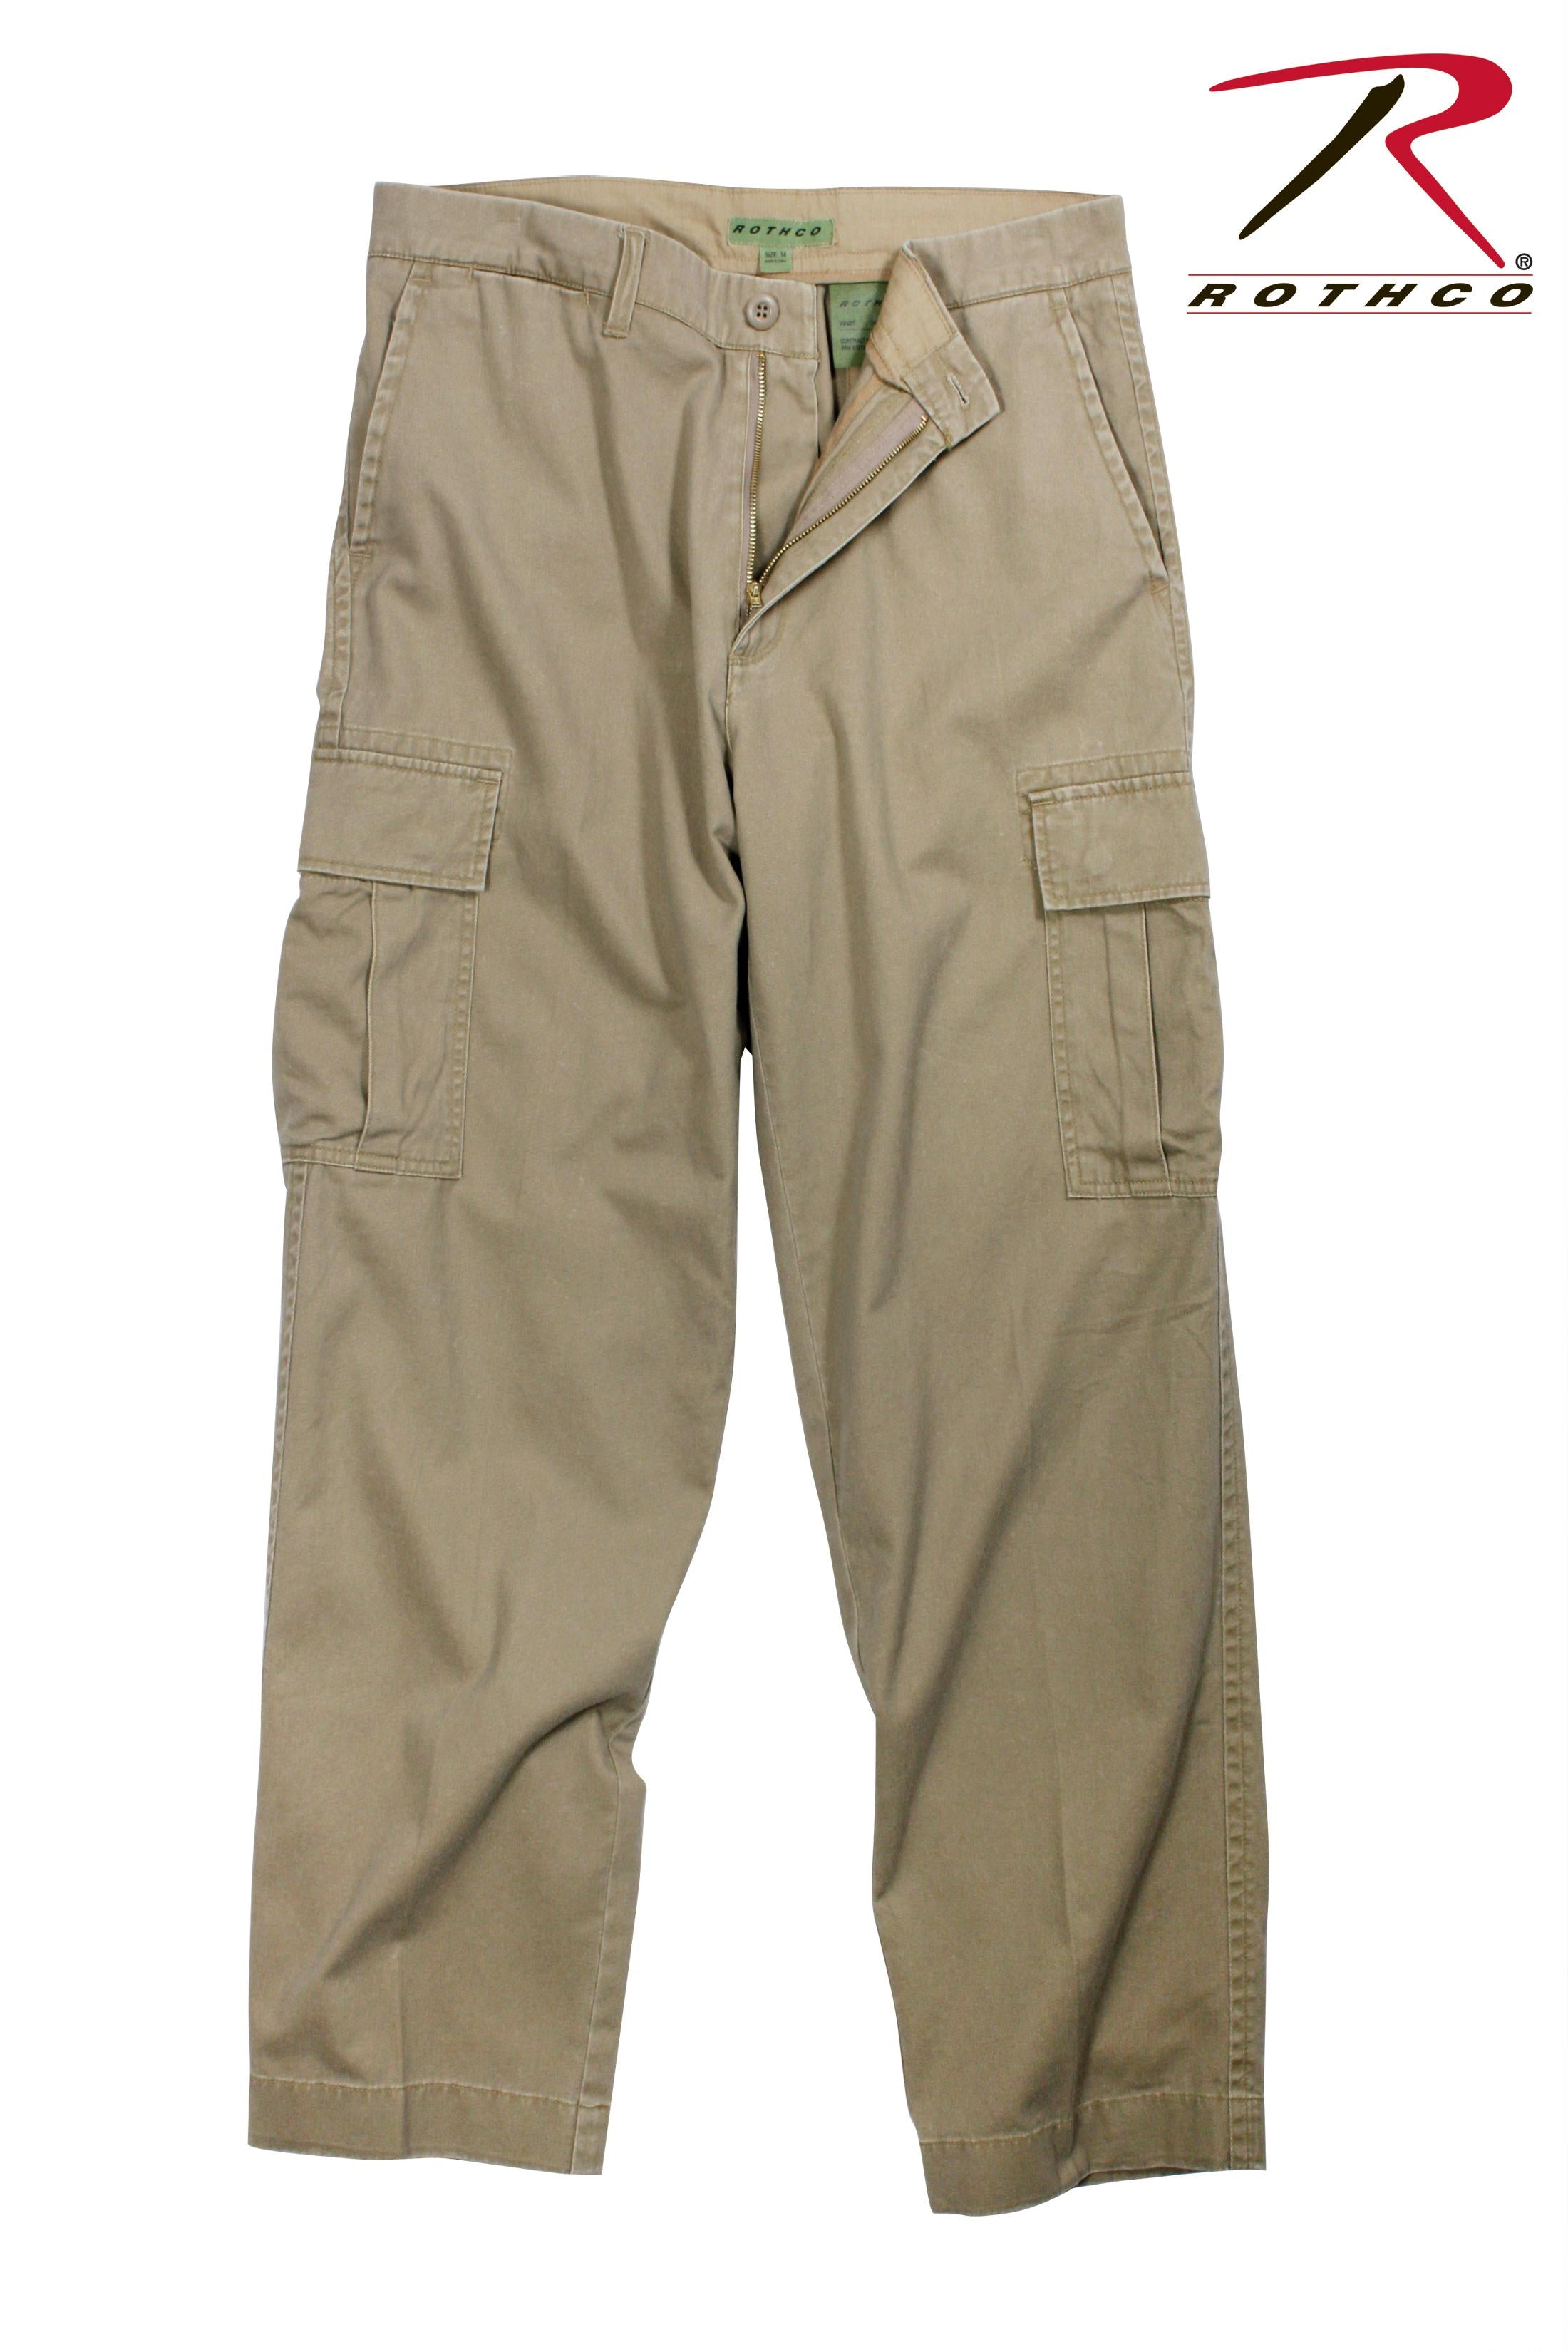 Rothco Vintage 6-Pocket Flat Front Fatigue Pants - Khaki / 44